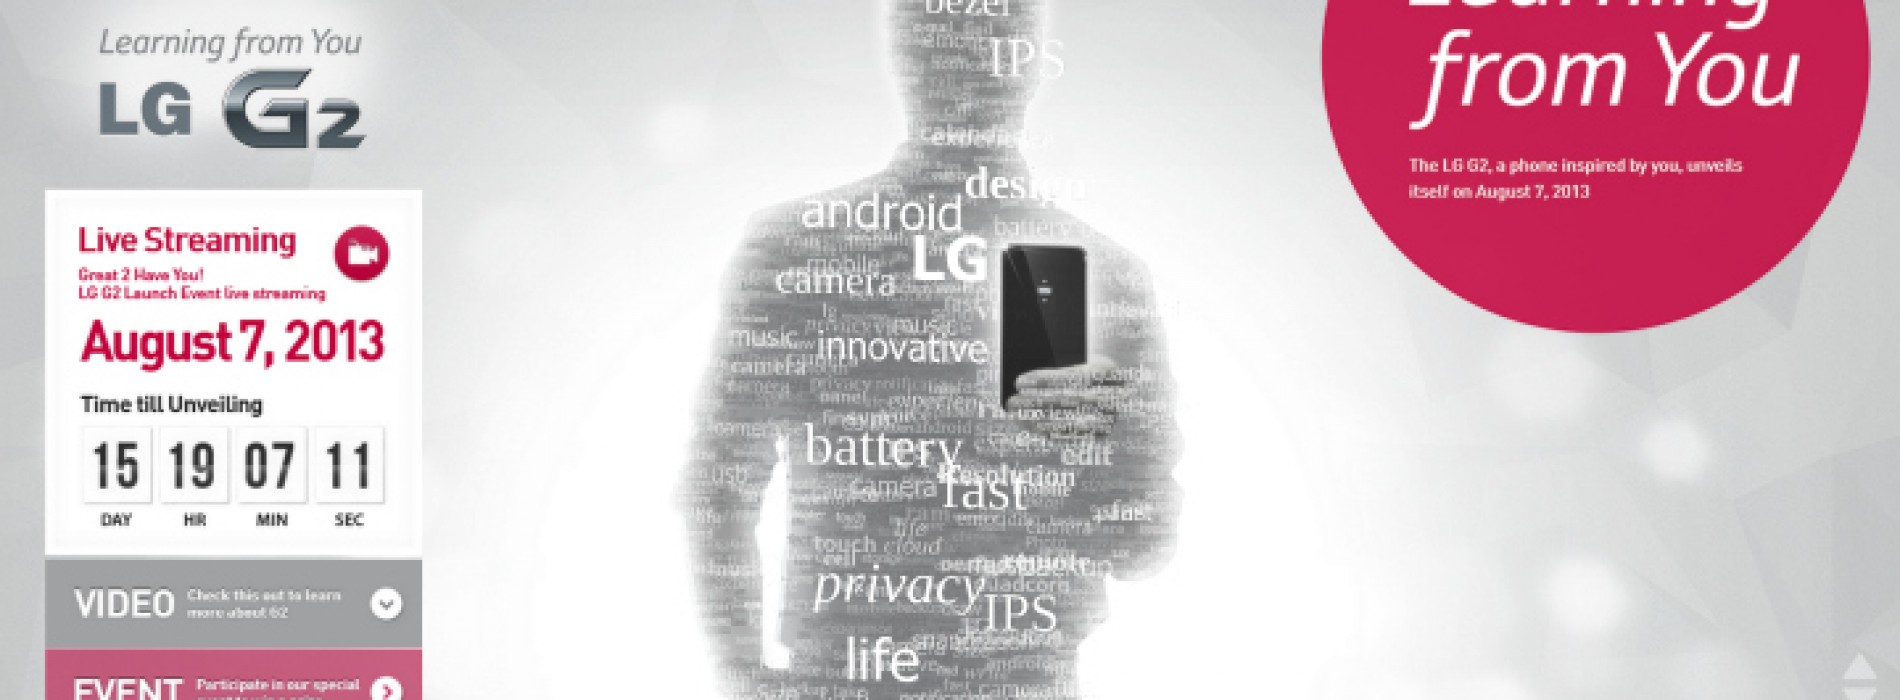 LG posts teaser video for upcoming G2 smartphone